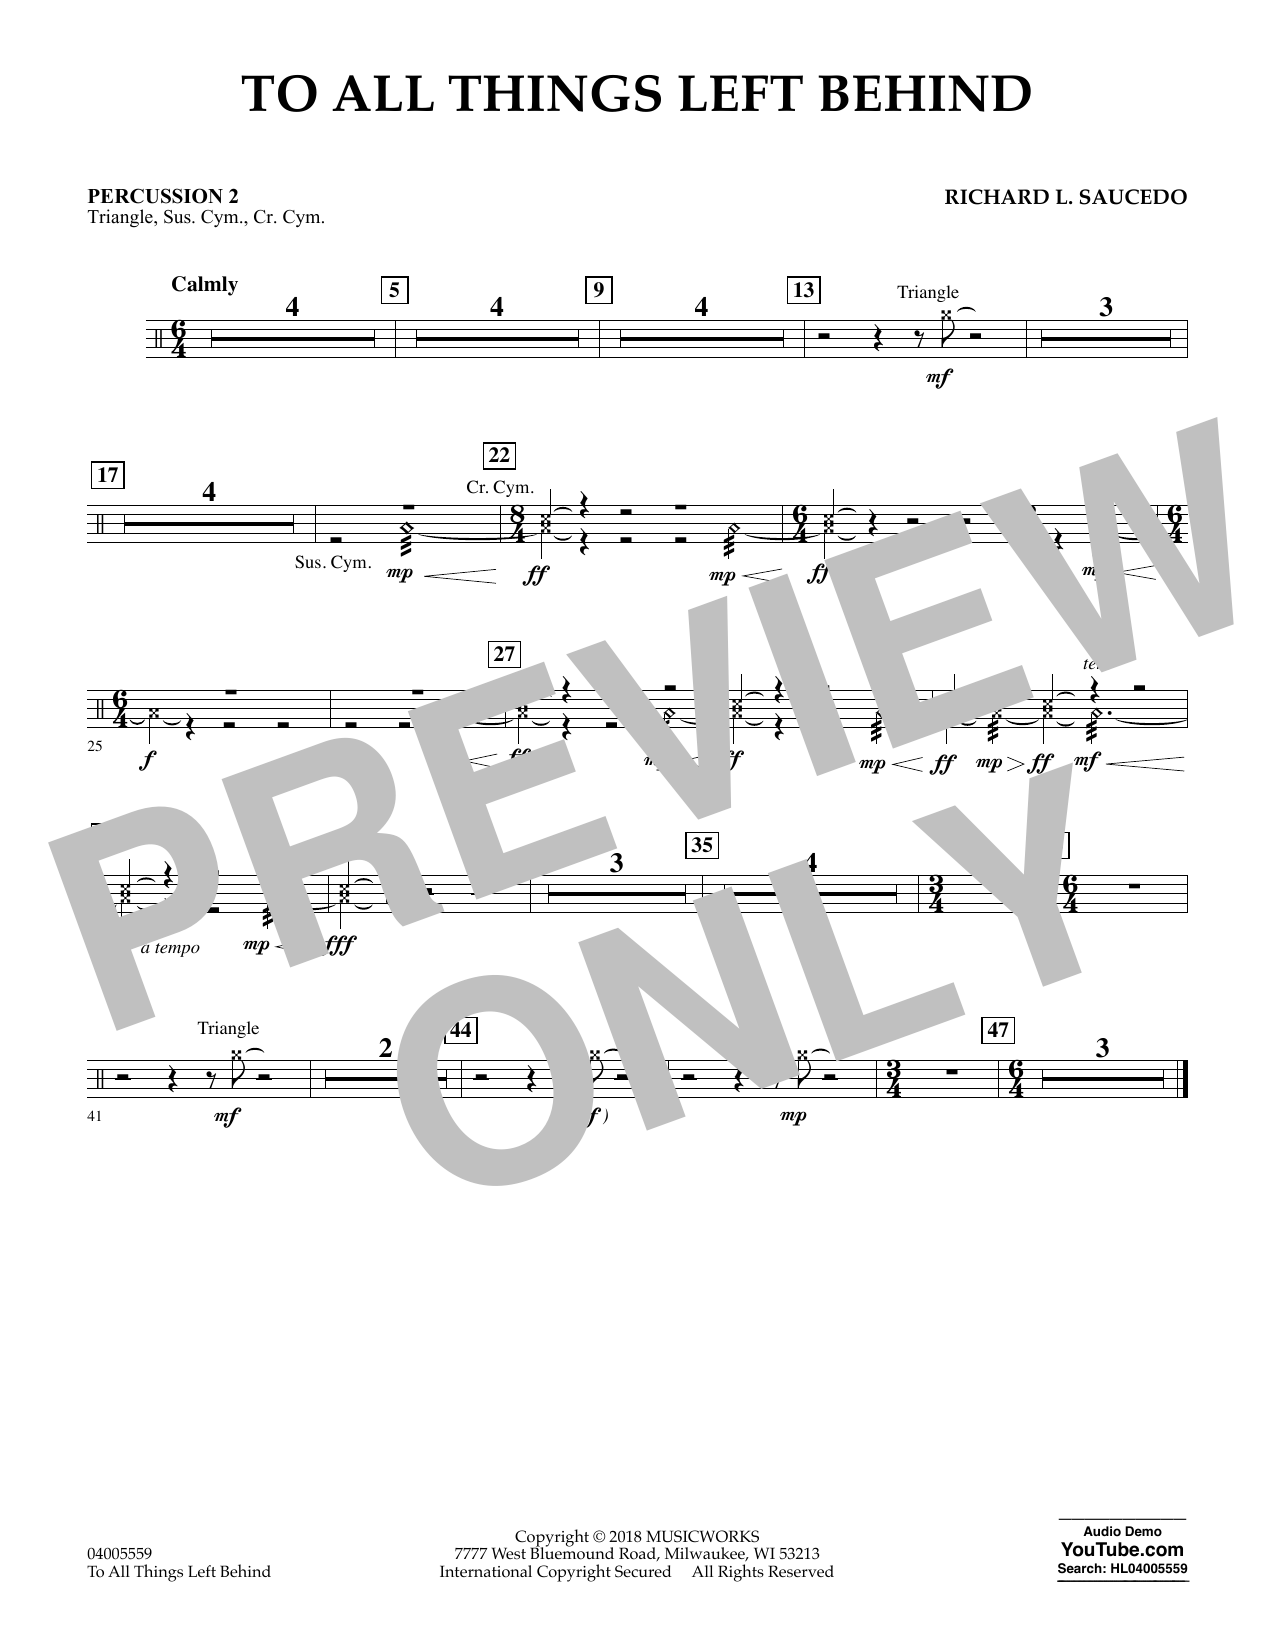 To All Things Left Behind - Percussion 2 (Concert Band)